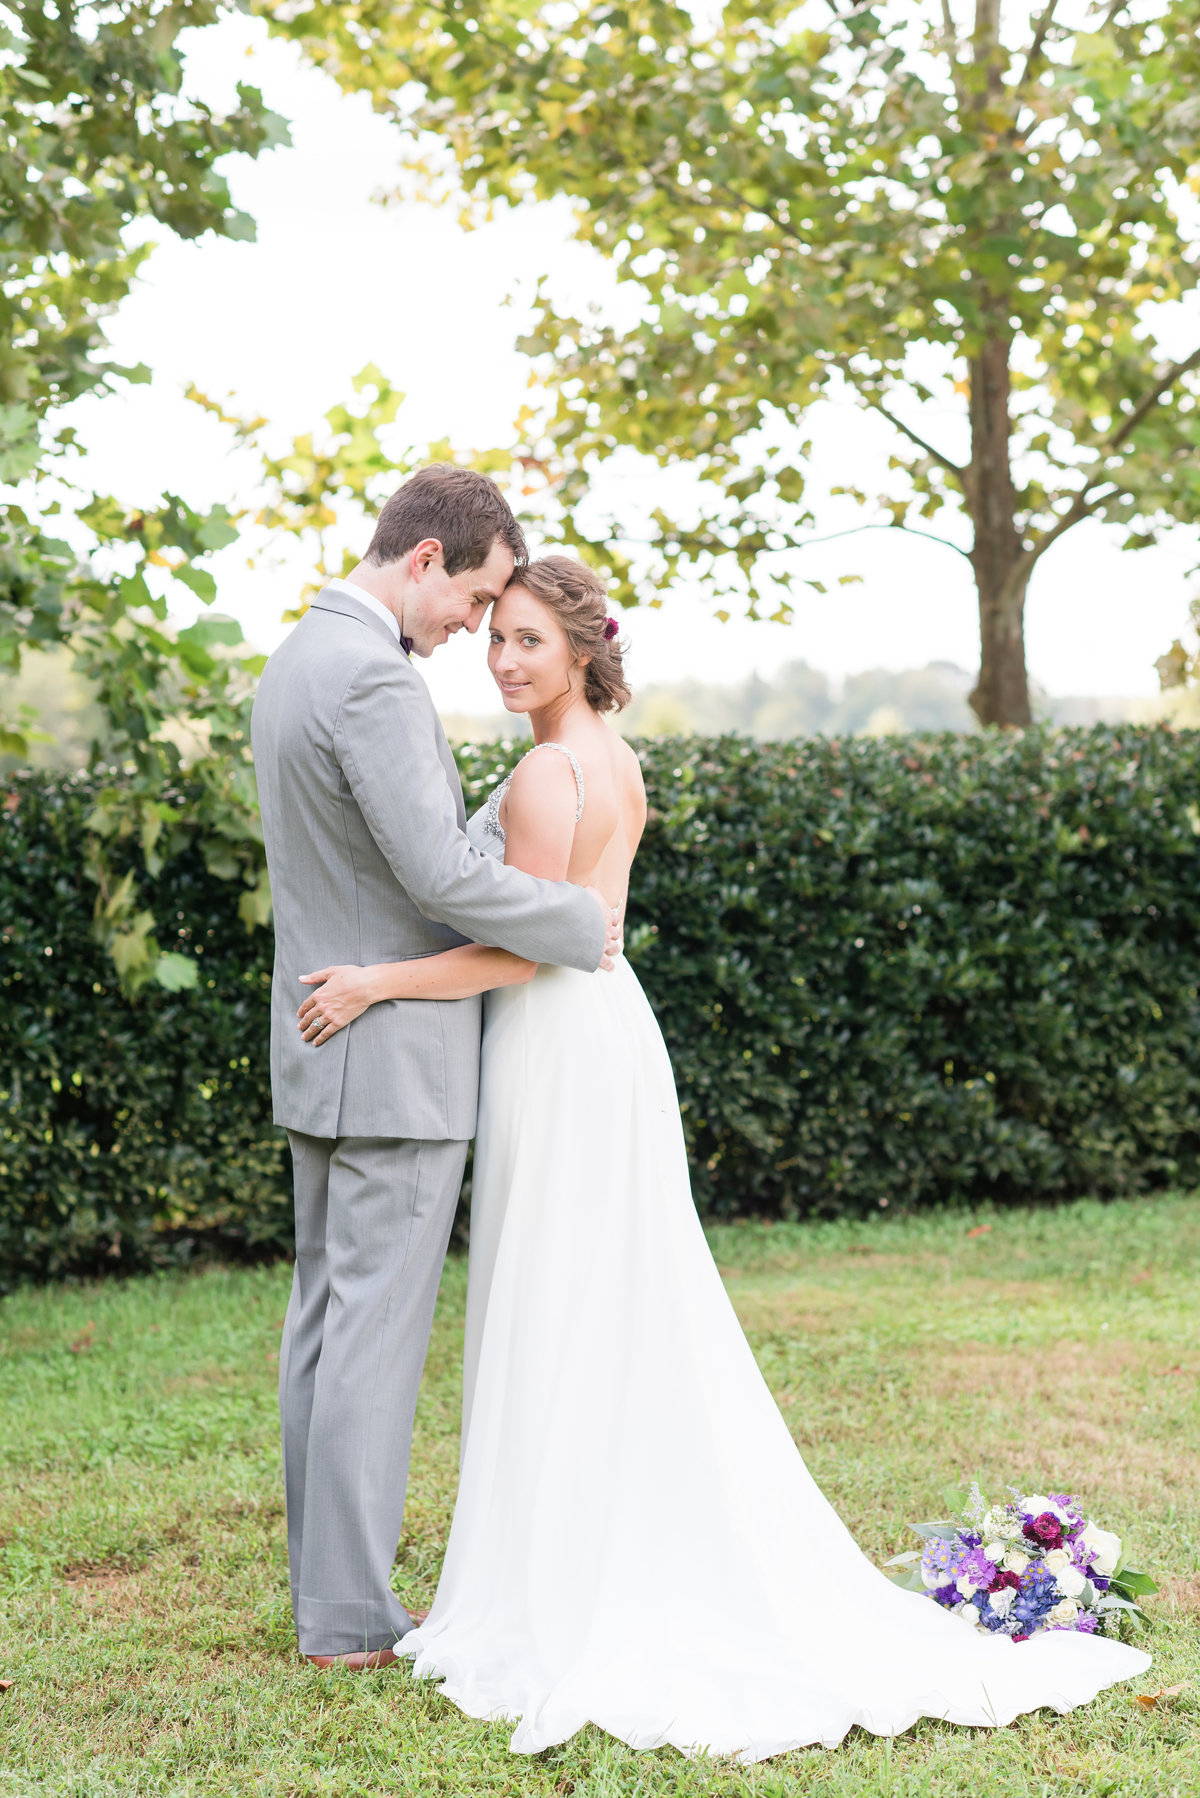 A Merry Hill Wedding, Michelle and Sara Photography, Mebane NC4